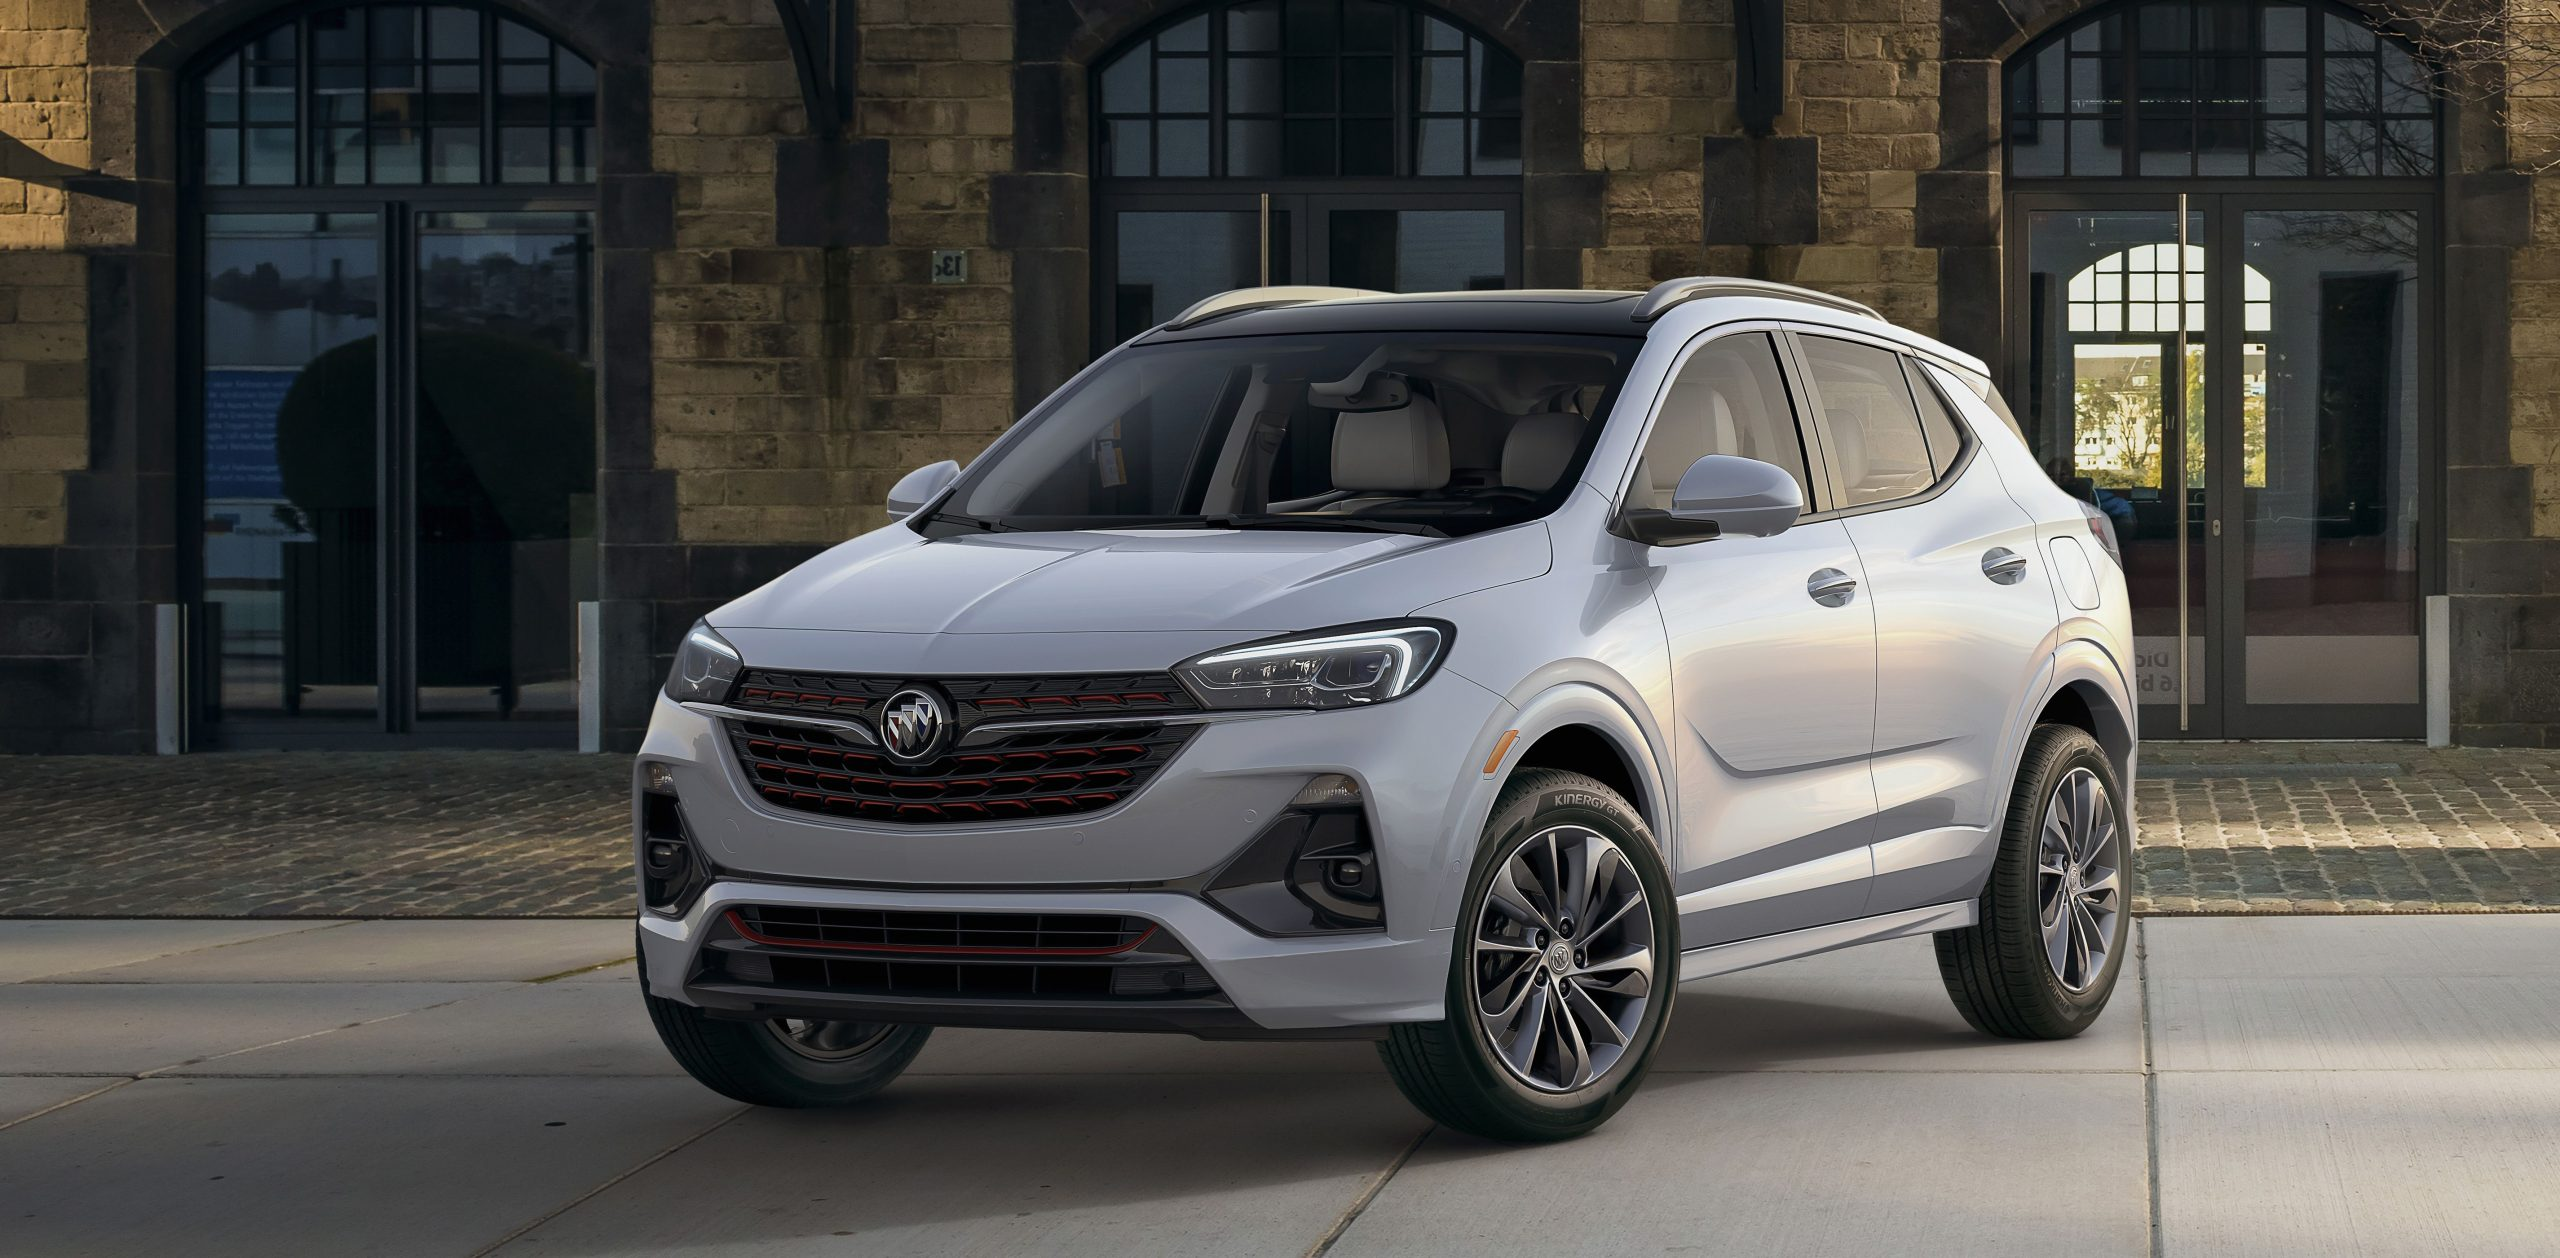 2020 Buick Encore Gx: What We Know So Far New 2021 Buick Encore Gx Lease Price, Mpg, Msrp